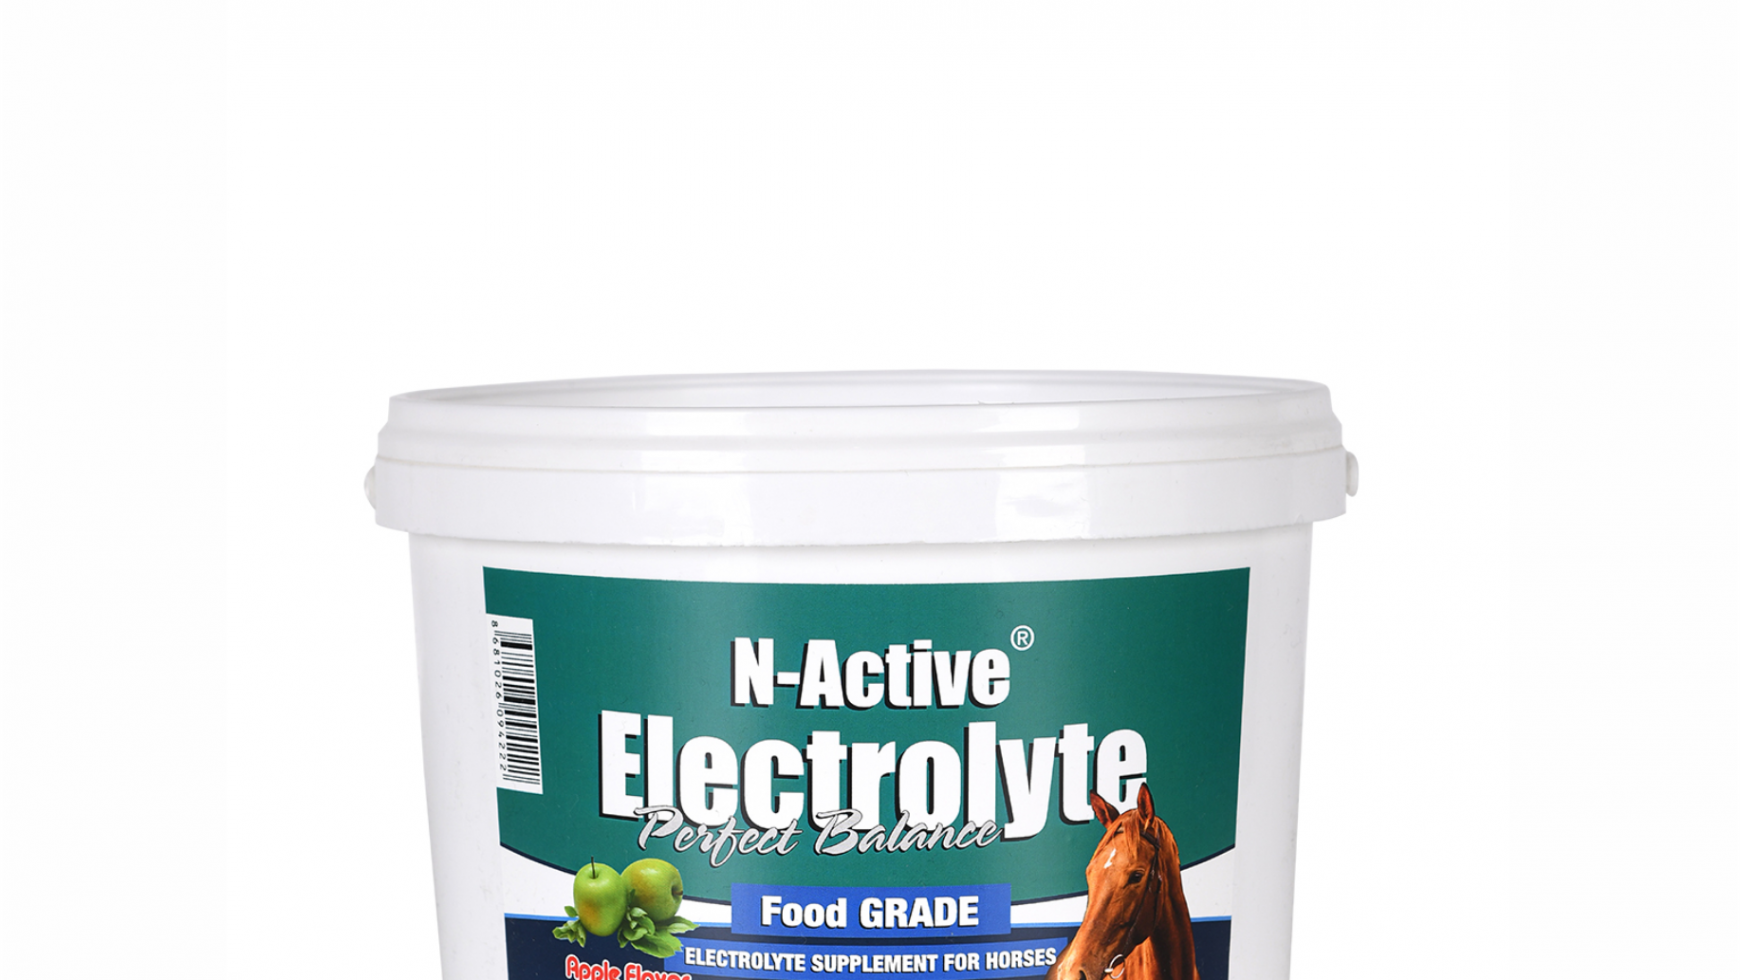 N'ACTIVE ELECTROLYTE APPLE